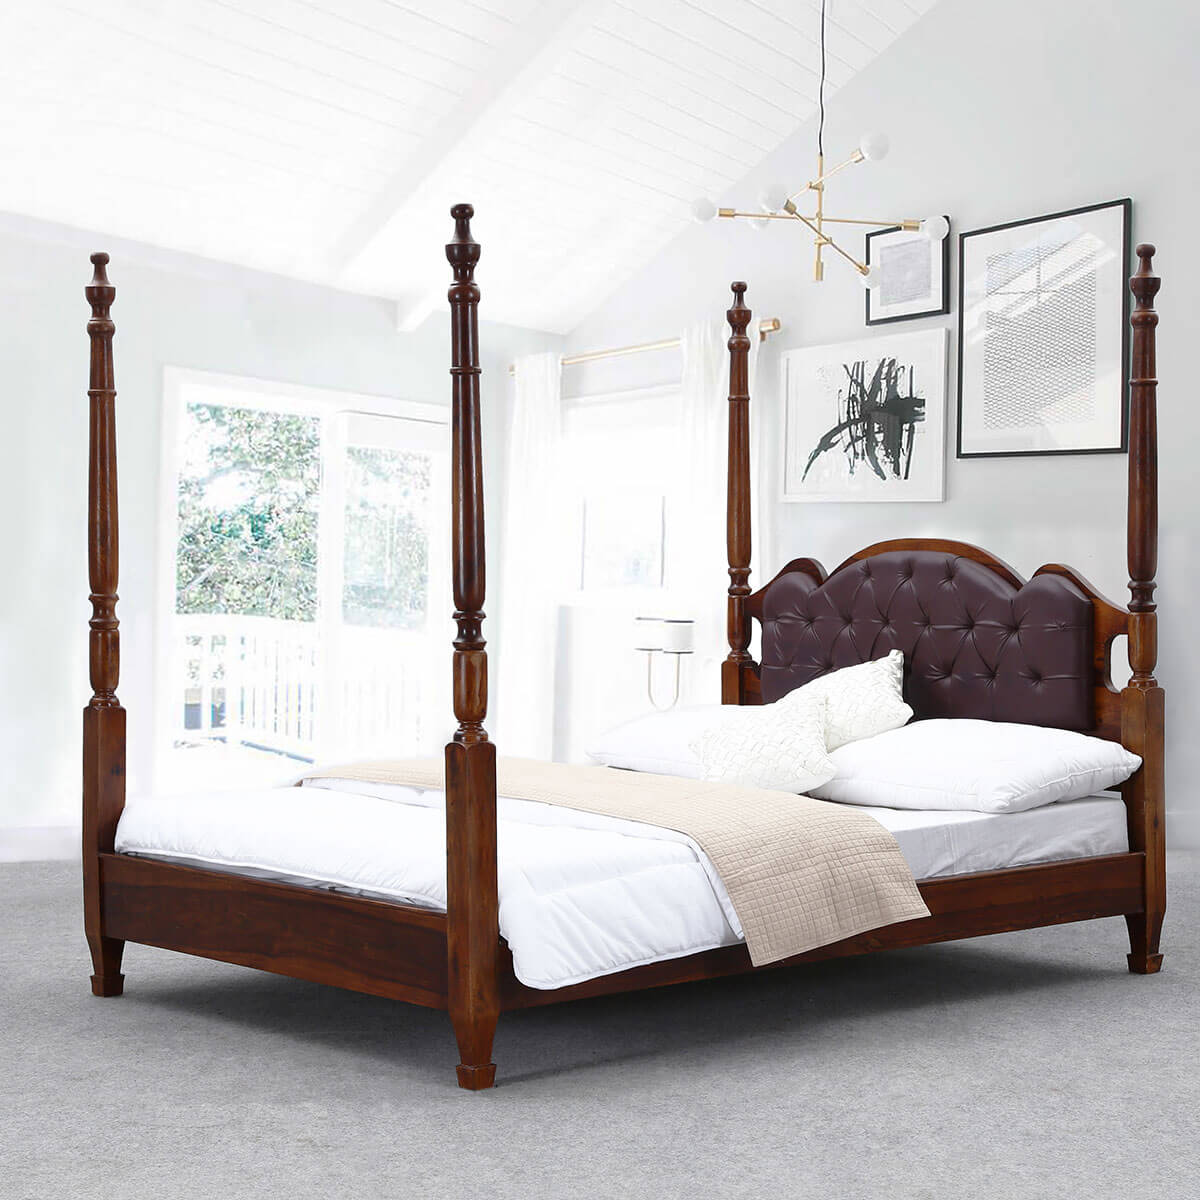 Four poster cal king size bed frame english tudor solid for Cal king bed size